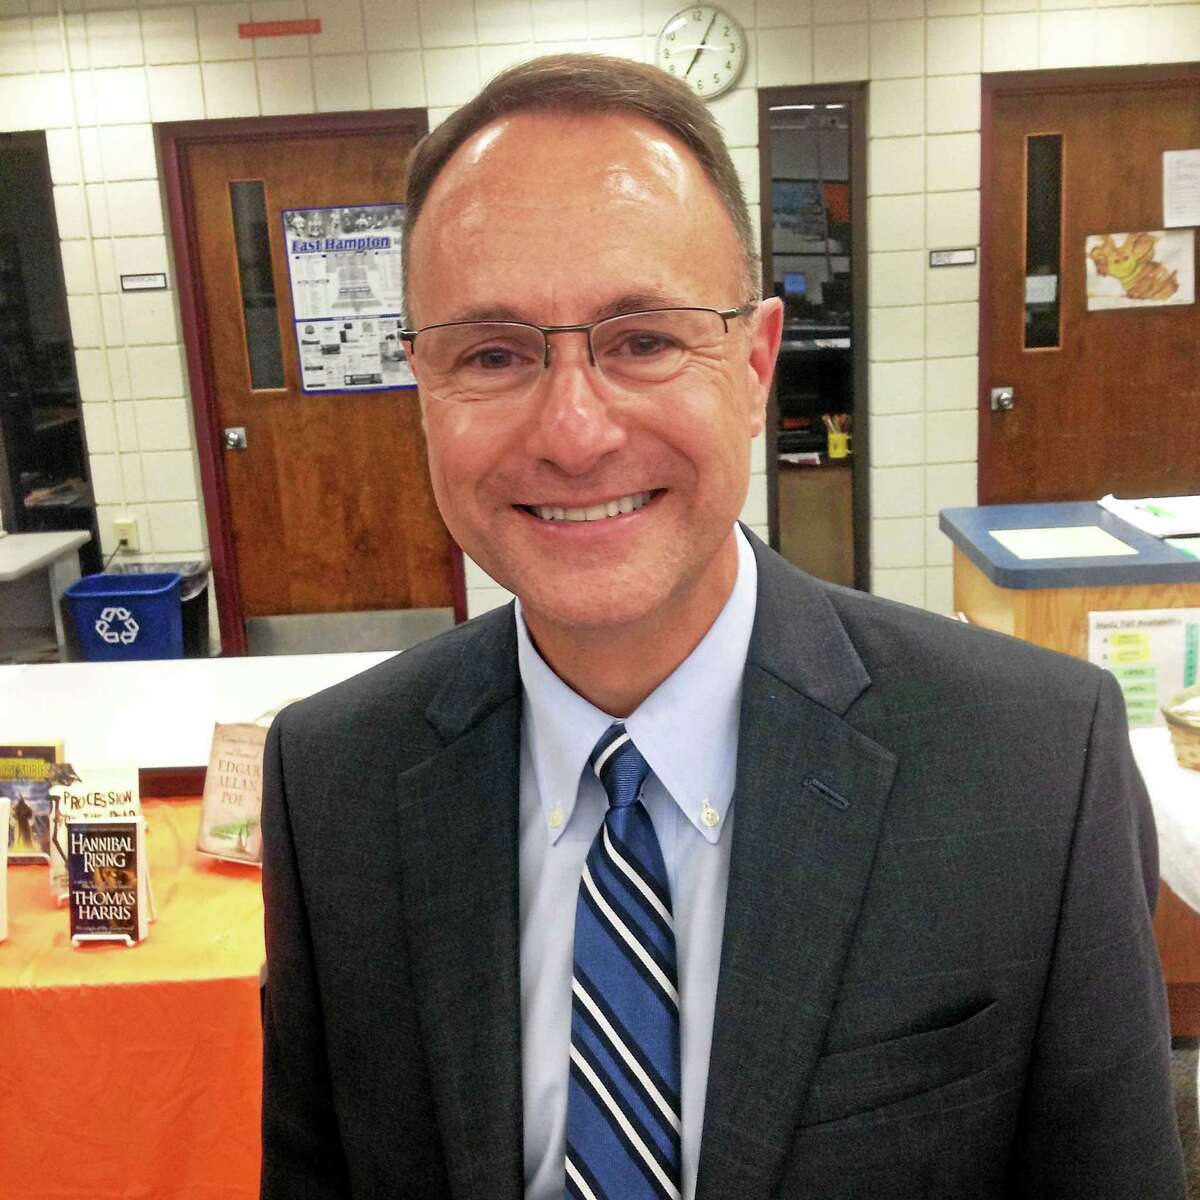 Paul Smith, superintendent of East Hampton schools, wants to meet parents and community members next month to discuss his budget and hear suggestions for the district's future.